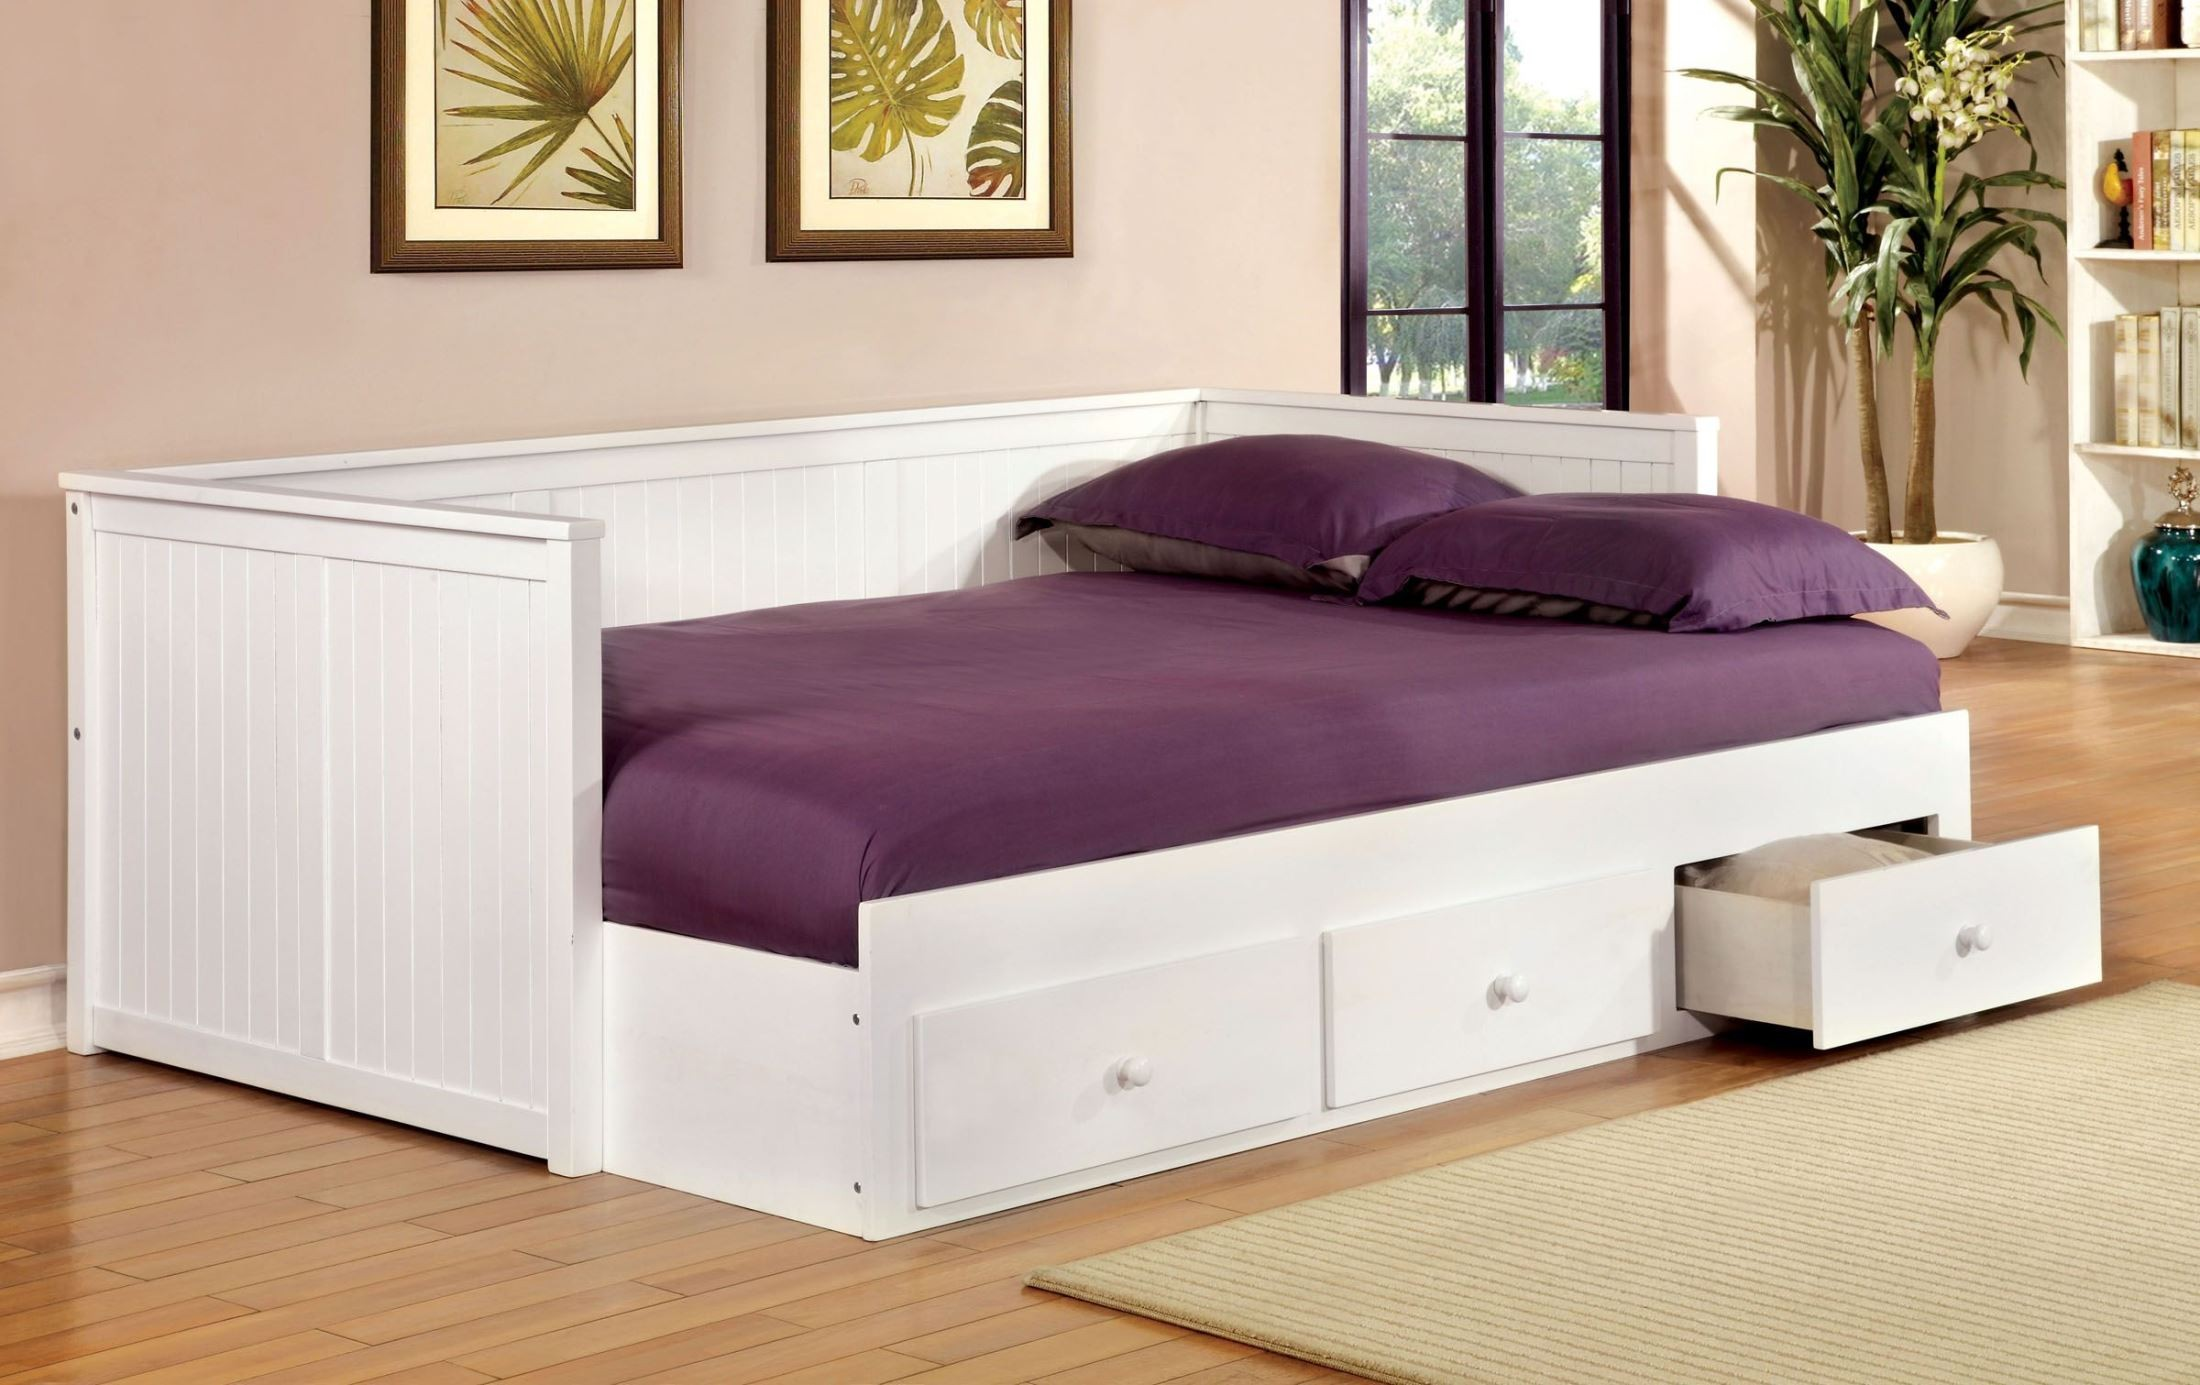 Wolford White Full Size Storage Daybed from Furniture of America ...